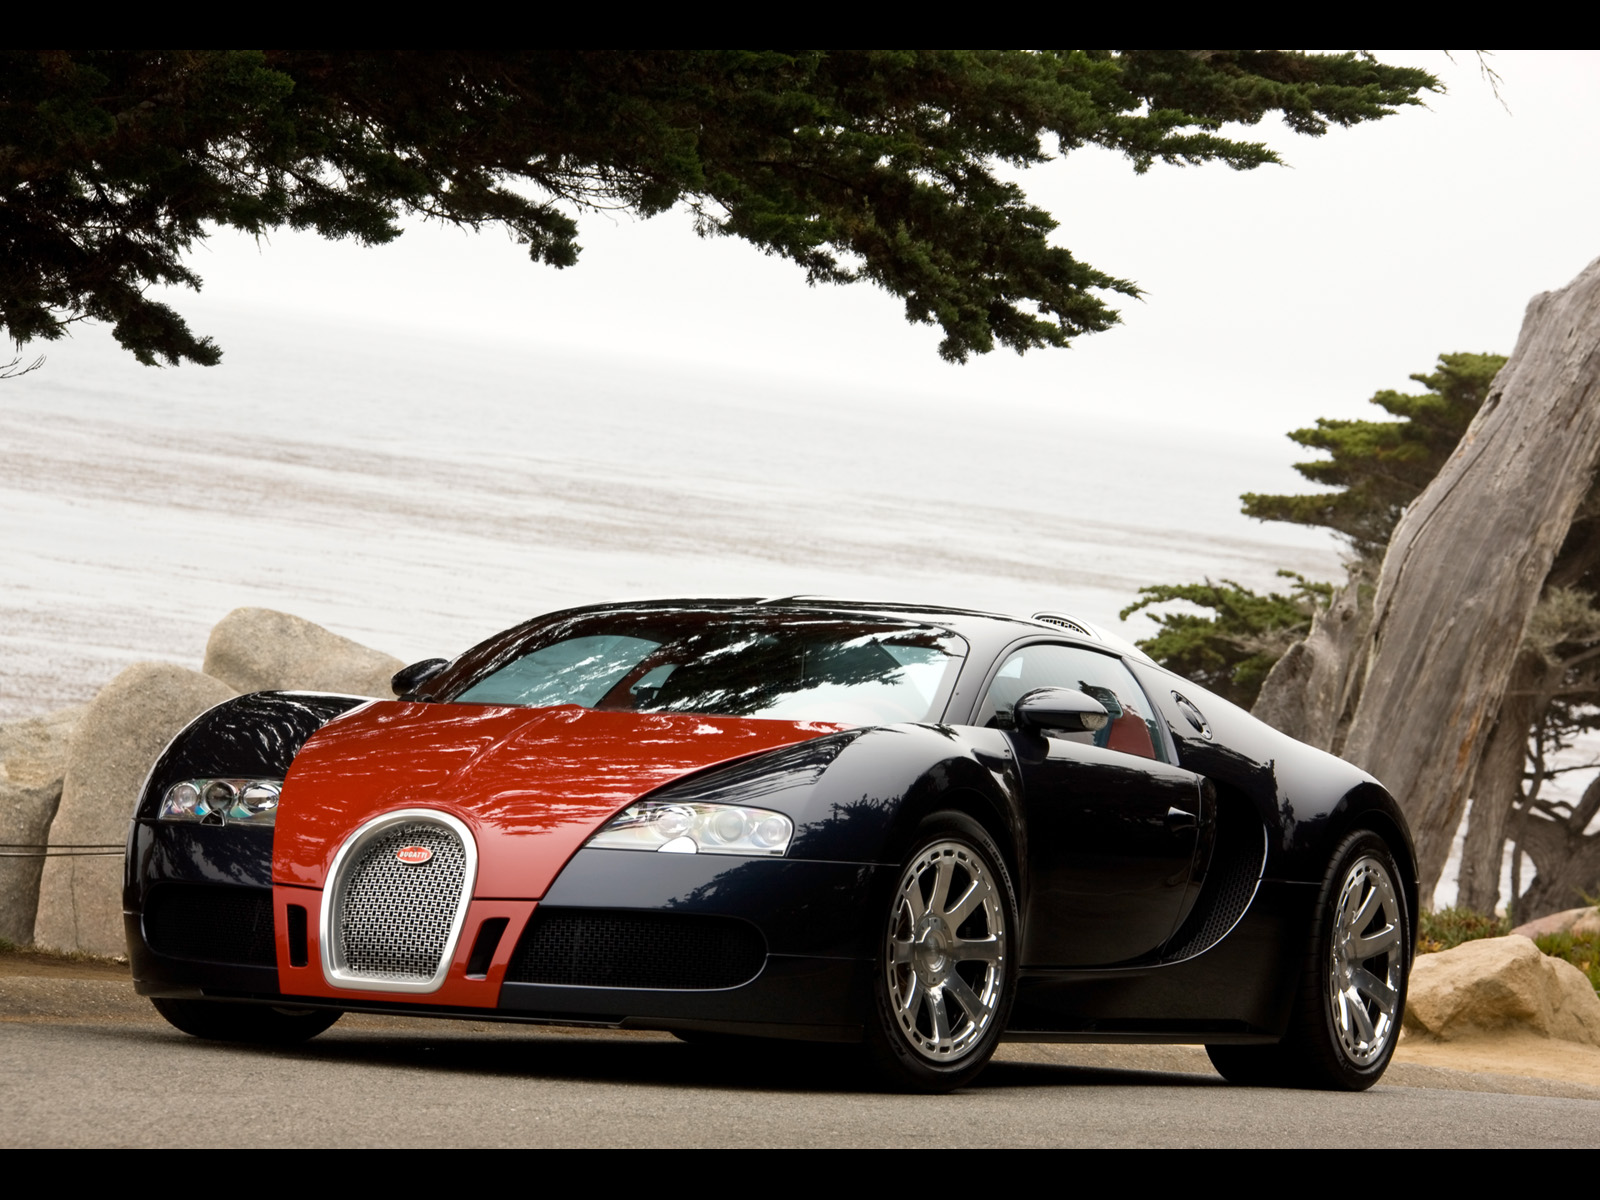 2009 Bugatti Veyron Fbg par Hermes photo - 1